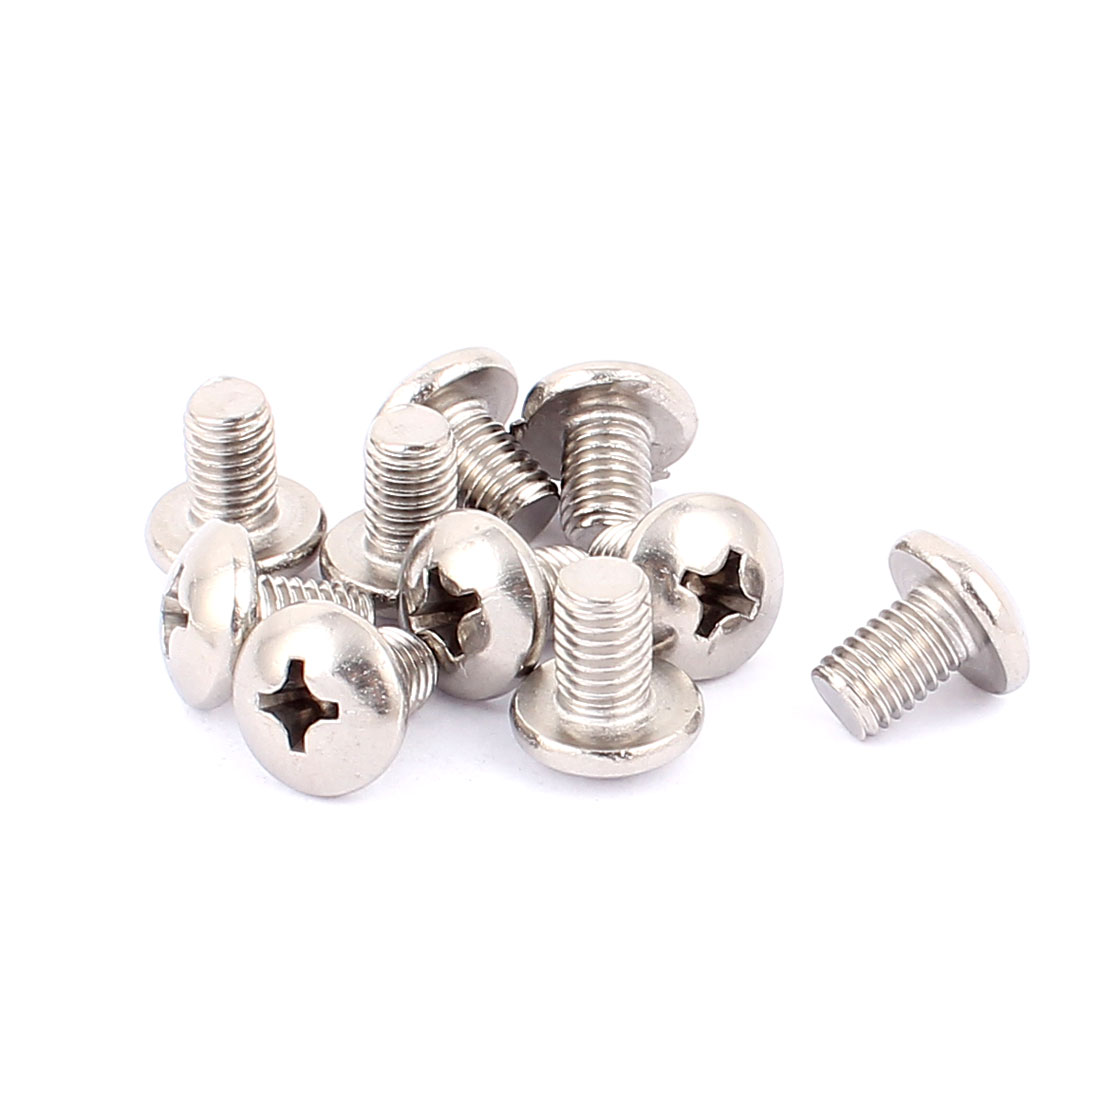 M8x12mm Thread 1.25mm Pitch Round Head Phillips Screws Bolts 10pcs